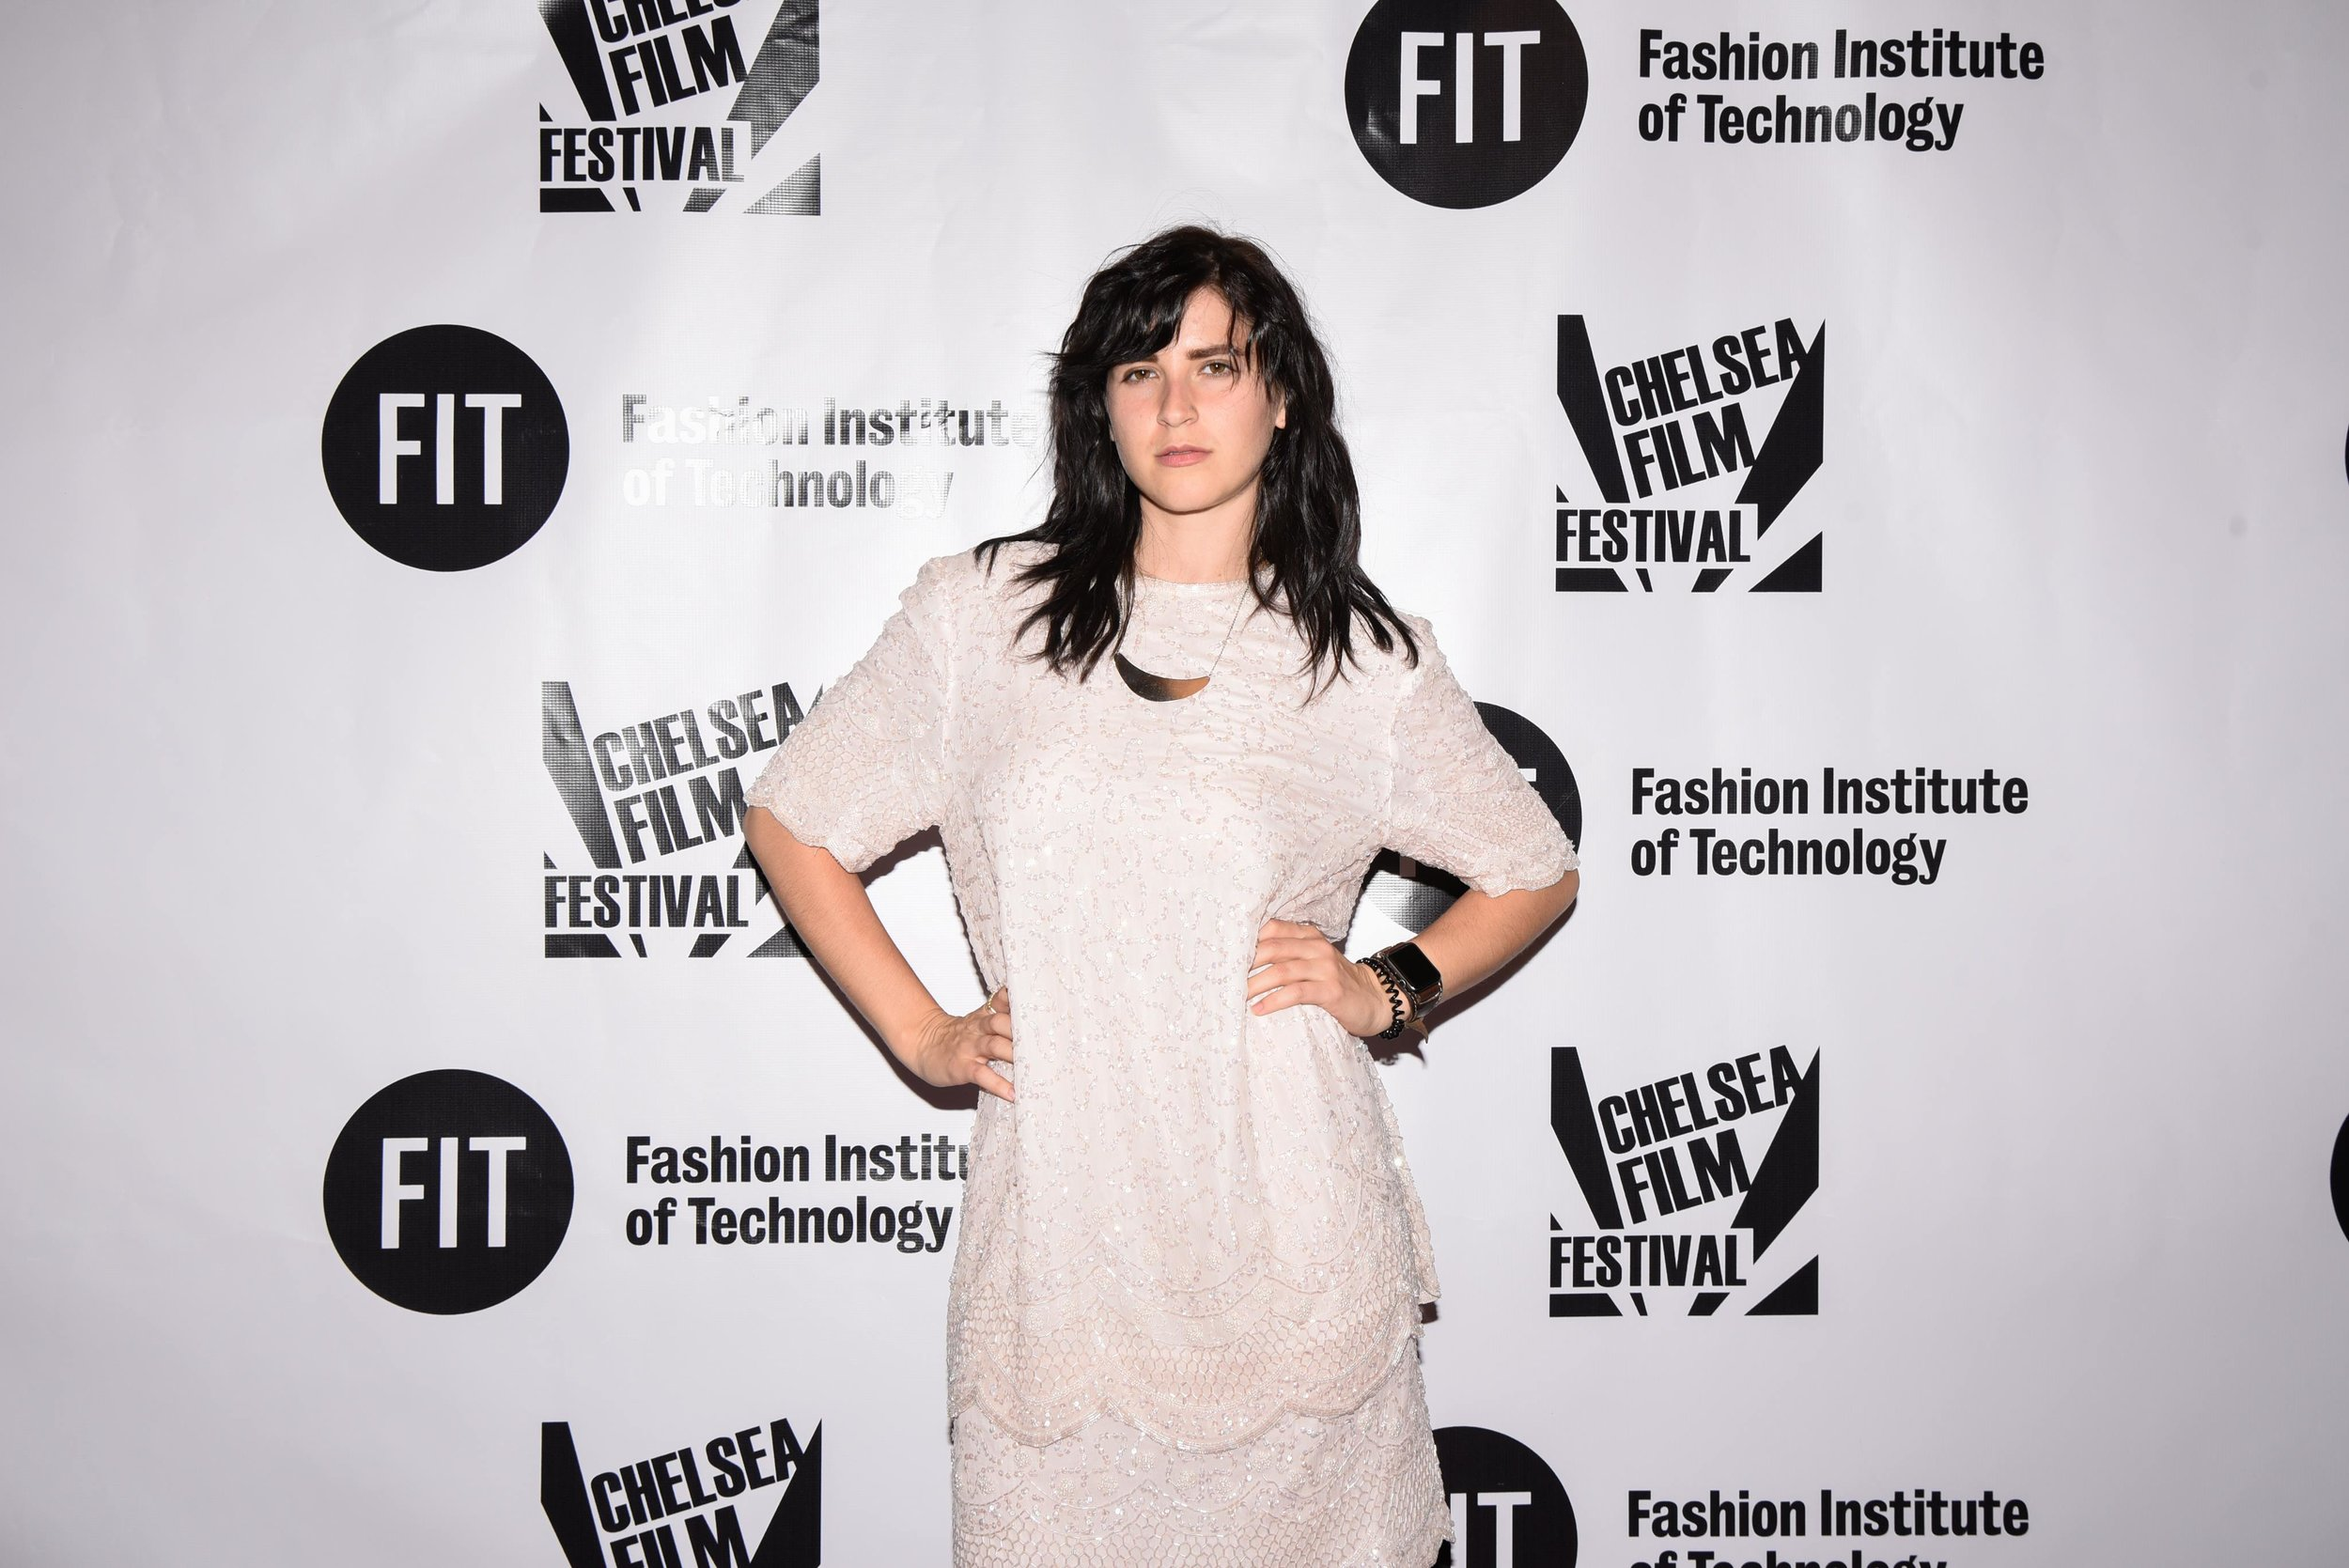 Marzy attends Chelsea Film Festival